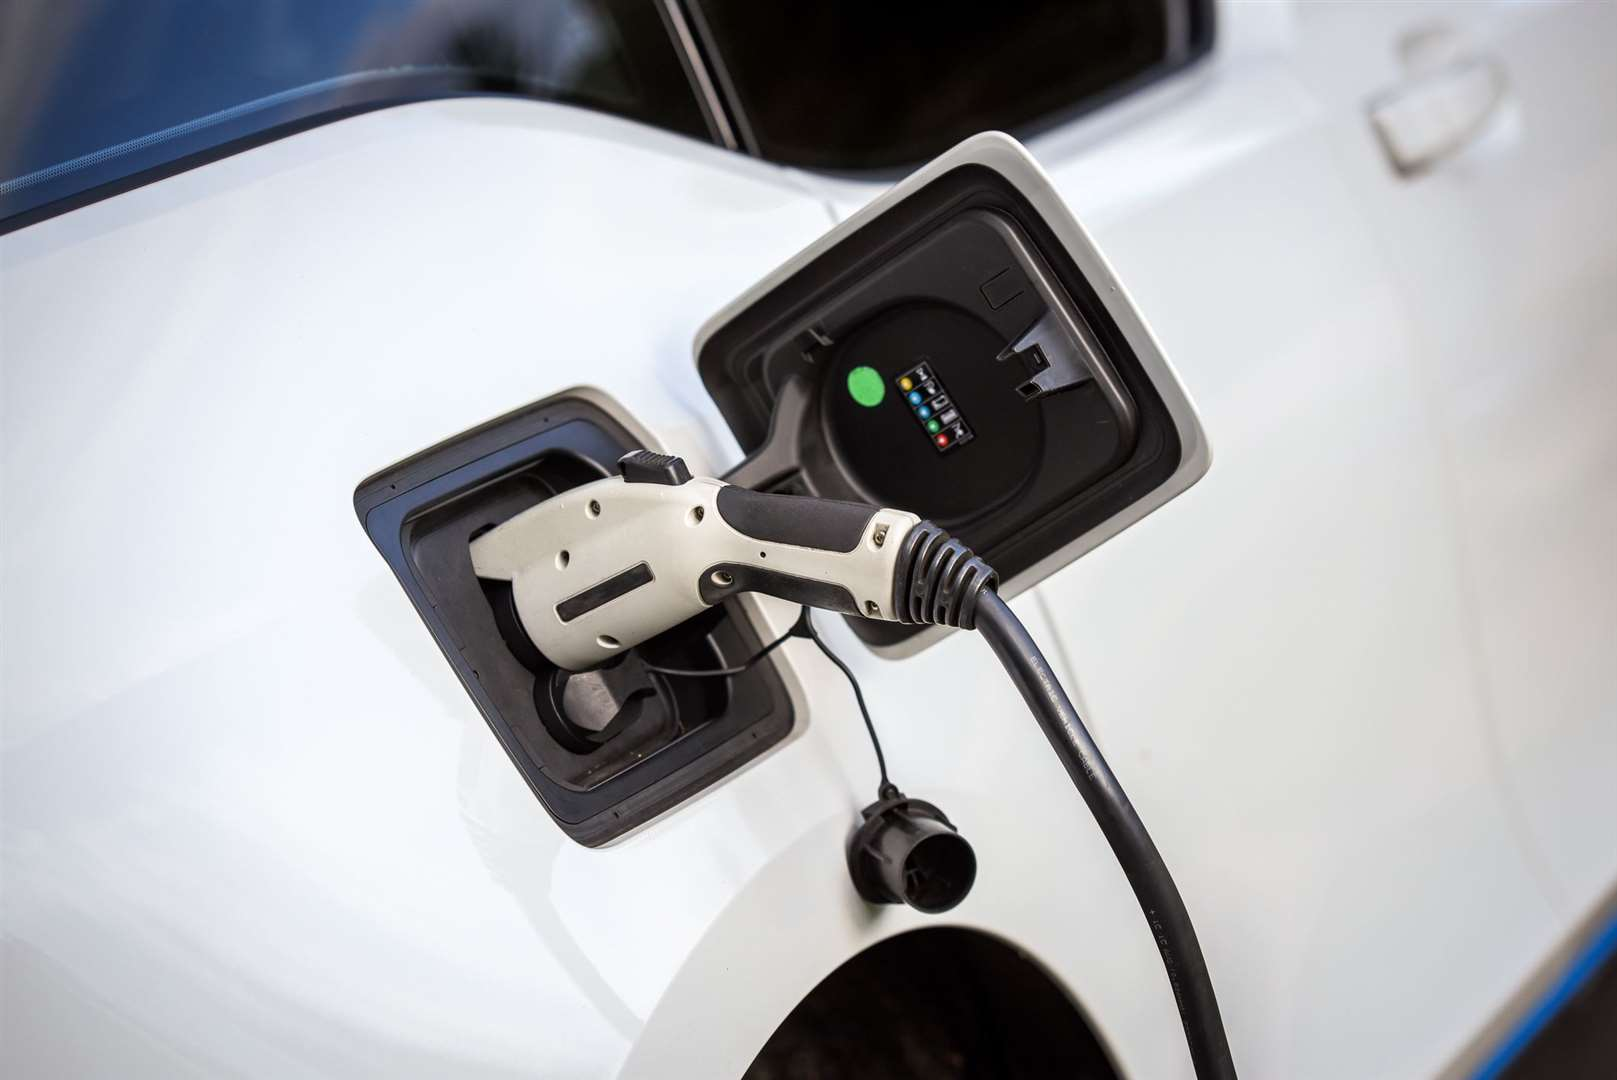 Electric cars are growing in popularity says one lease car company